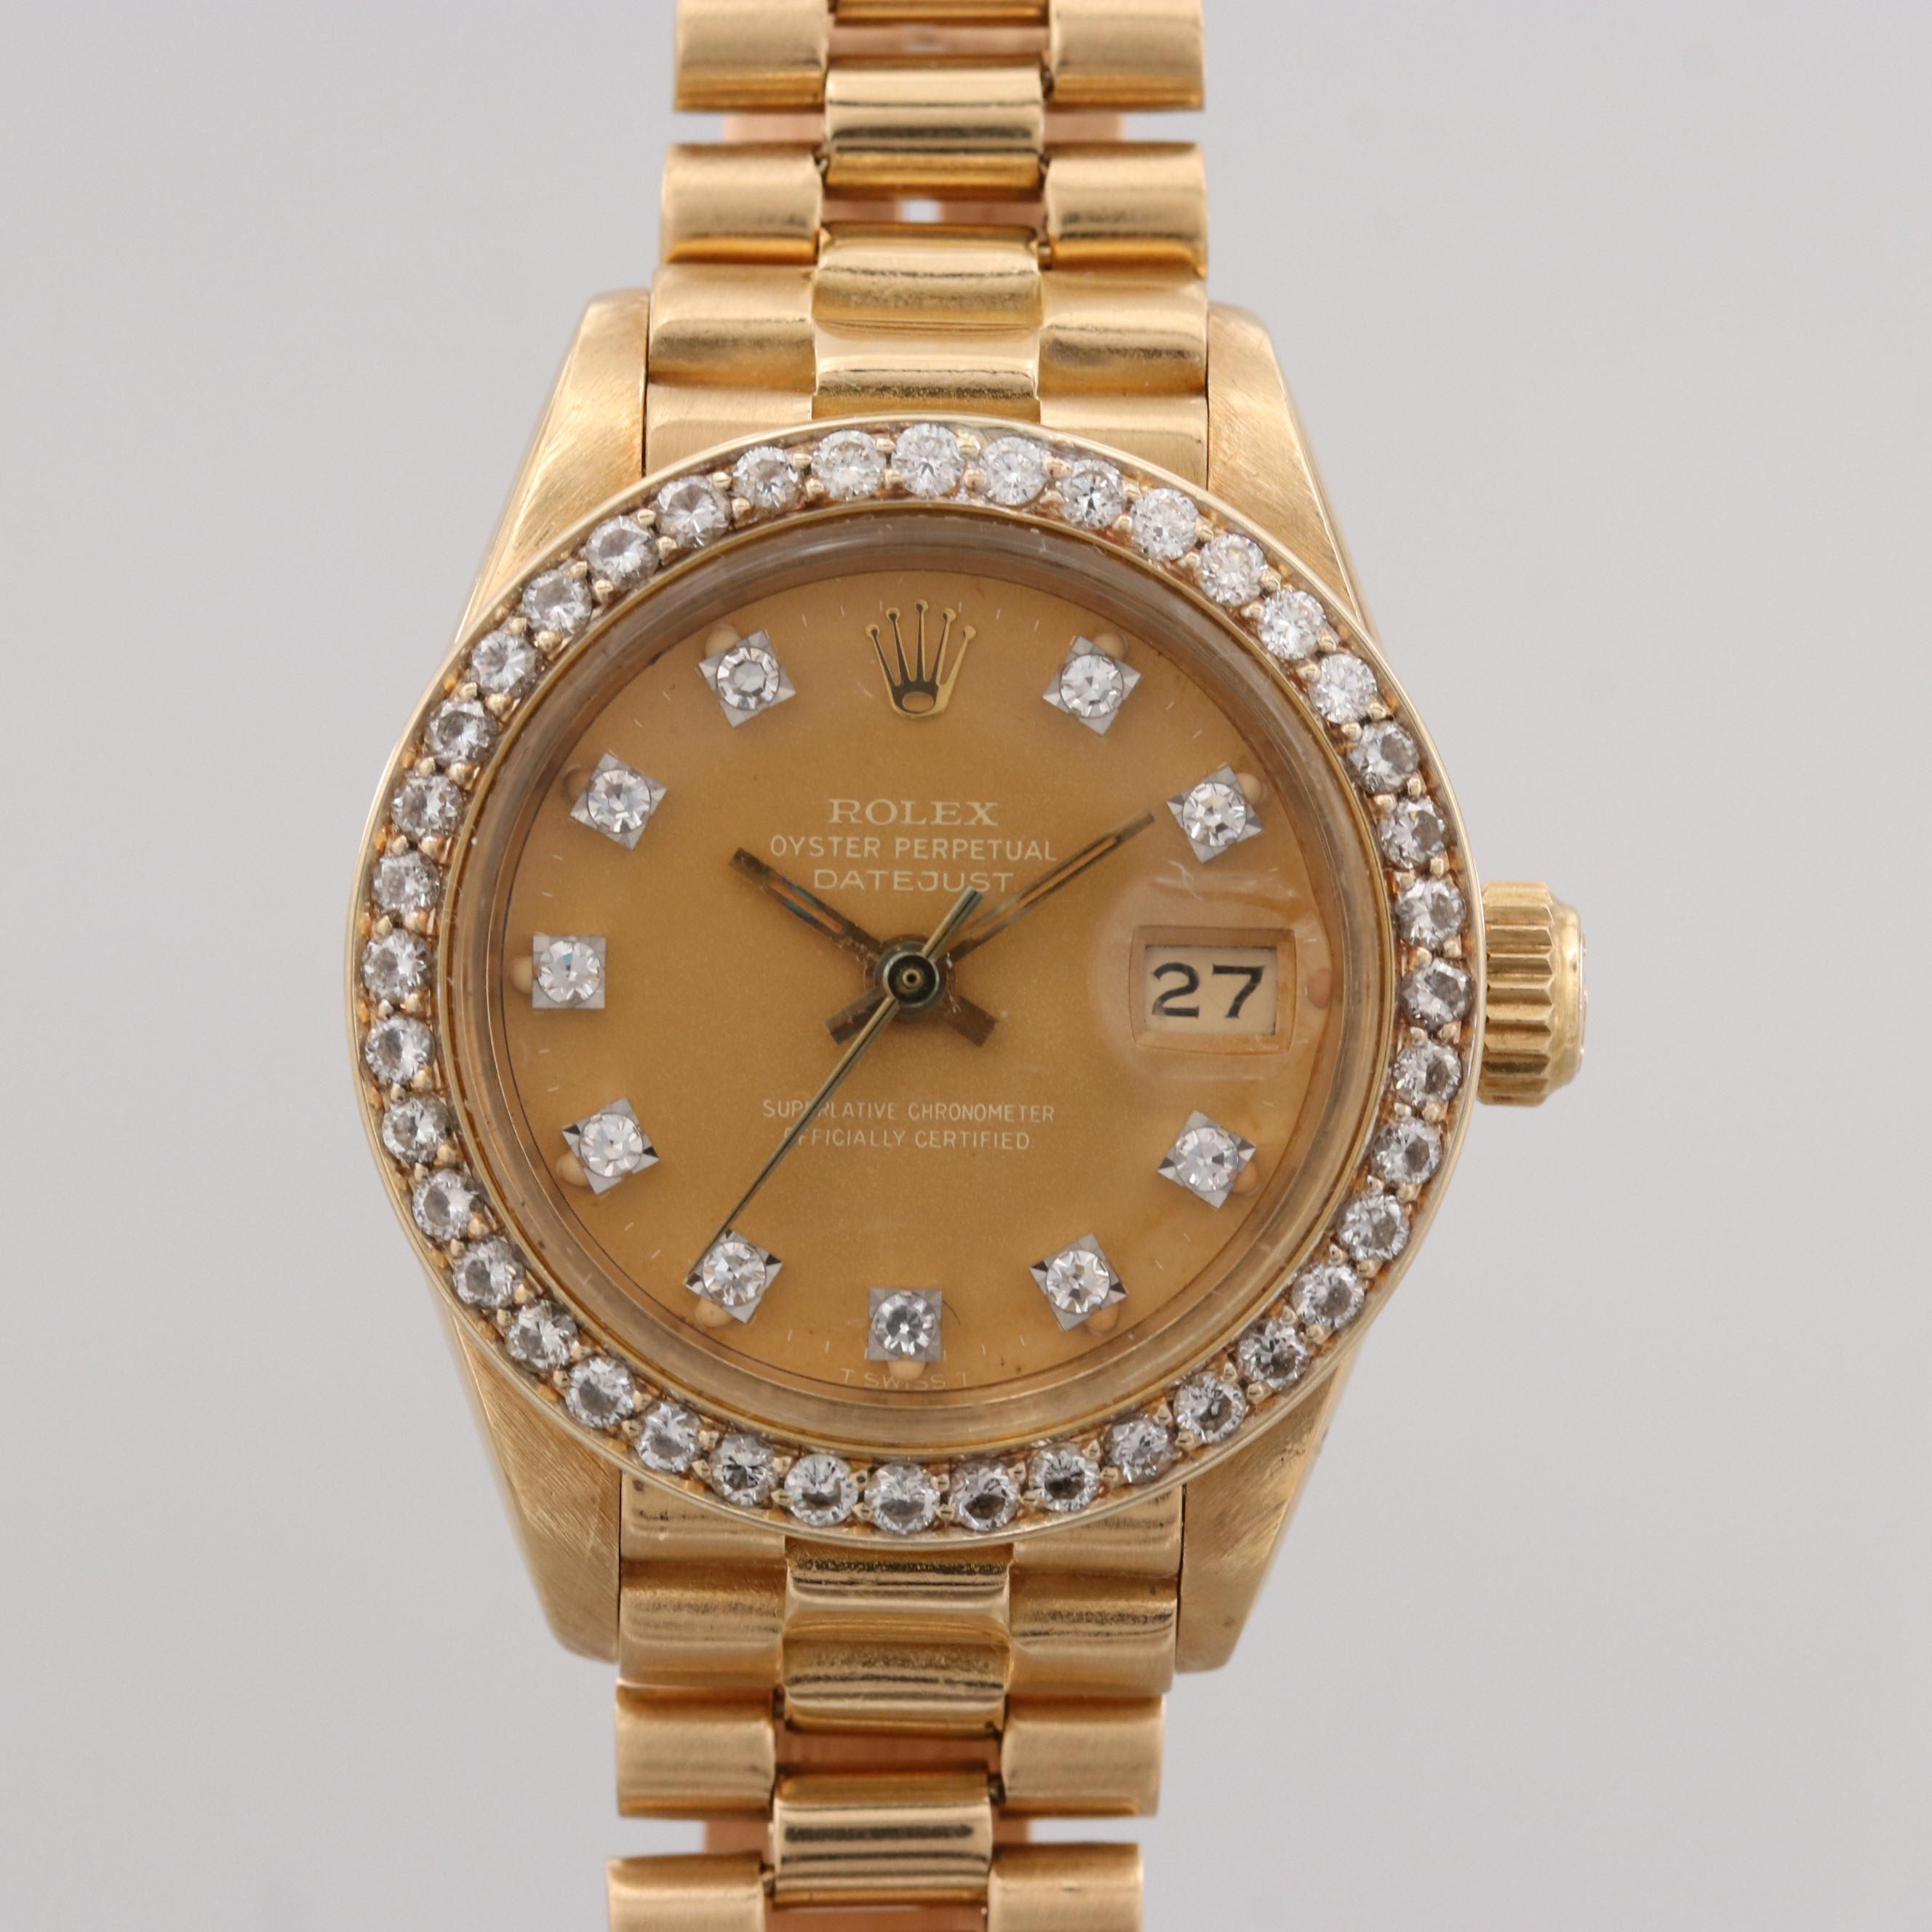 Vintage Rolex Datejust 18K Gold and Diamond Automatic Wristwatch, 1983